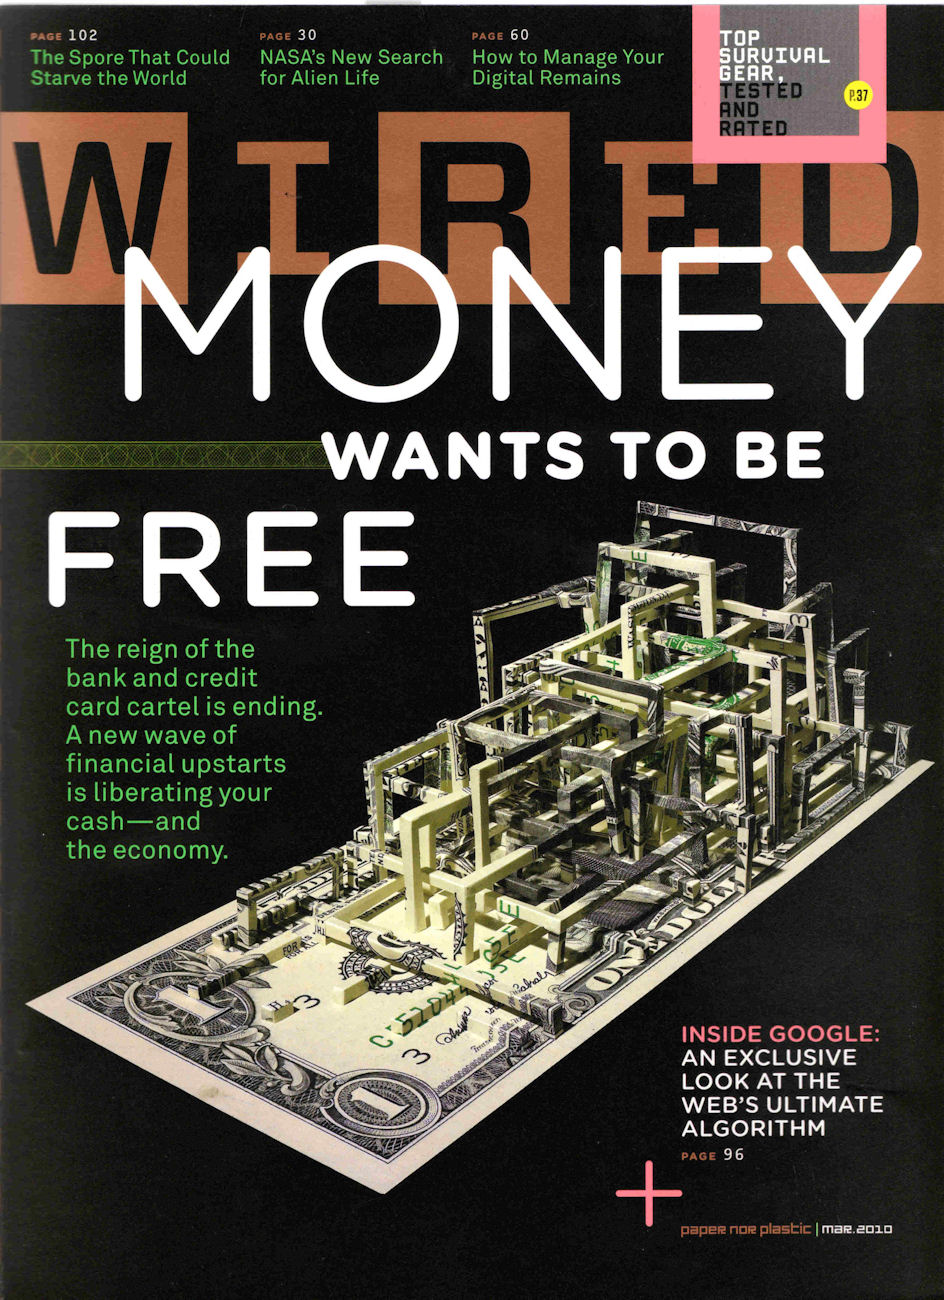 Wired Magazine (New York)